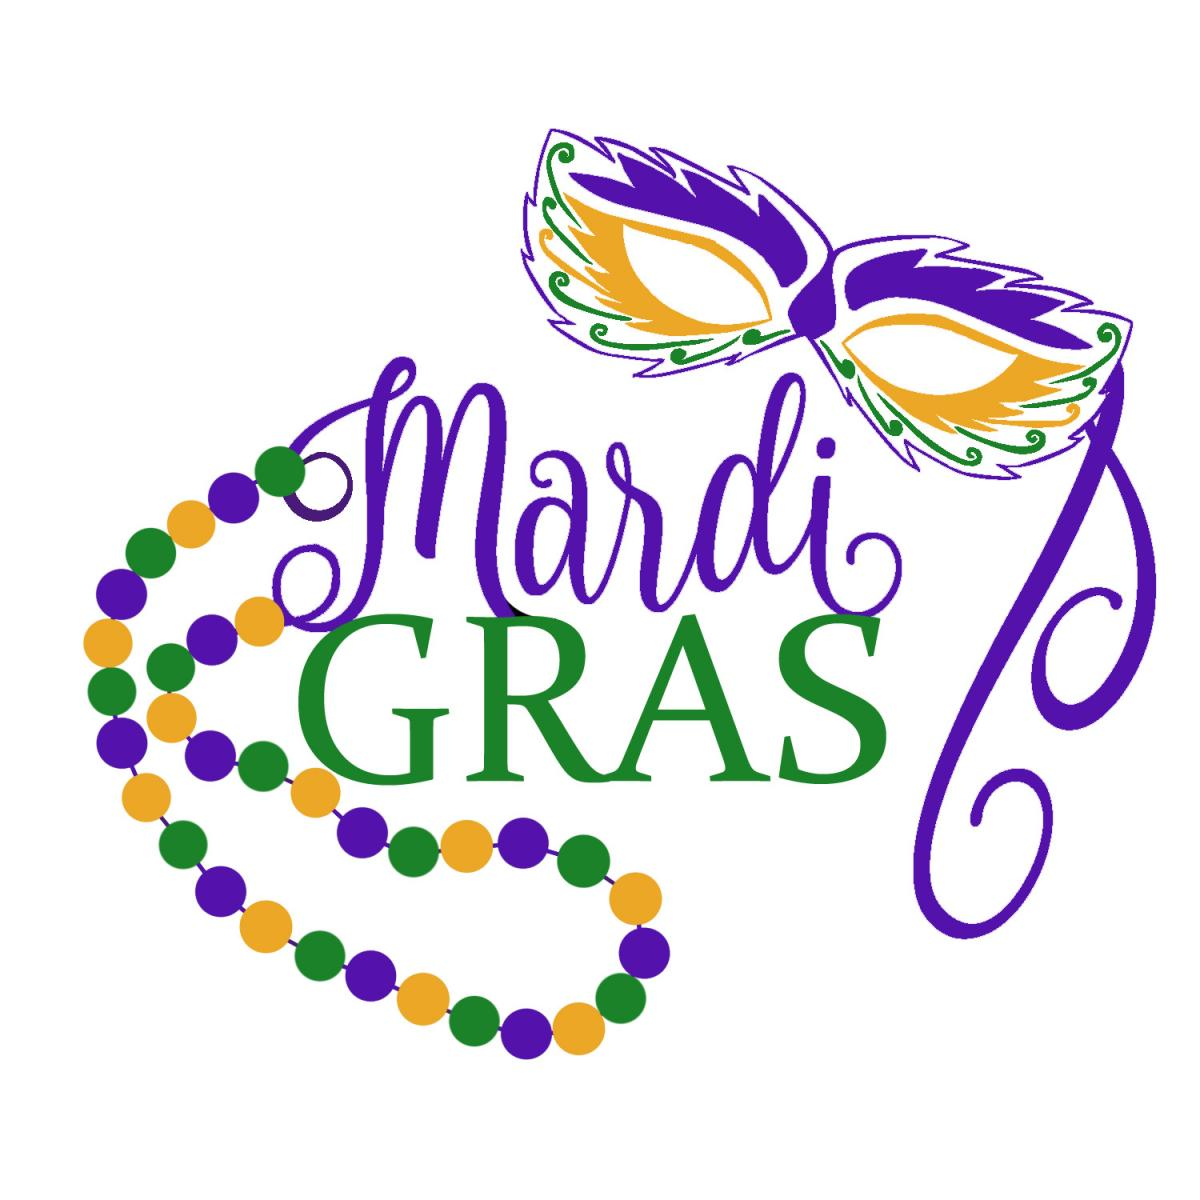 Clipart mardi gras svg library stock Mardi gras united way of calvert county clipart - ClipartBarn svg library stock